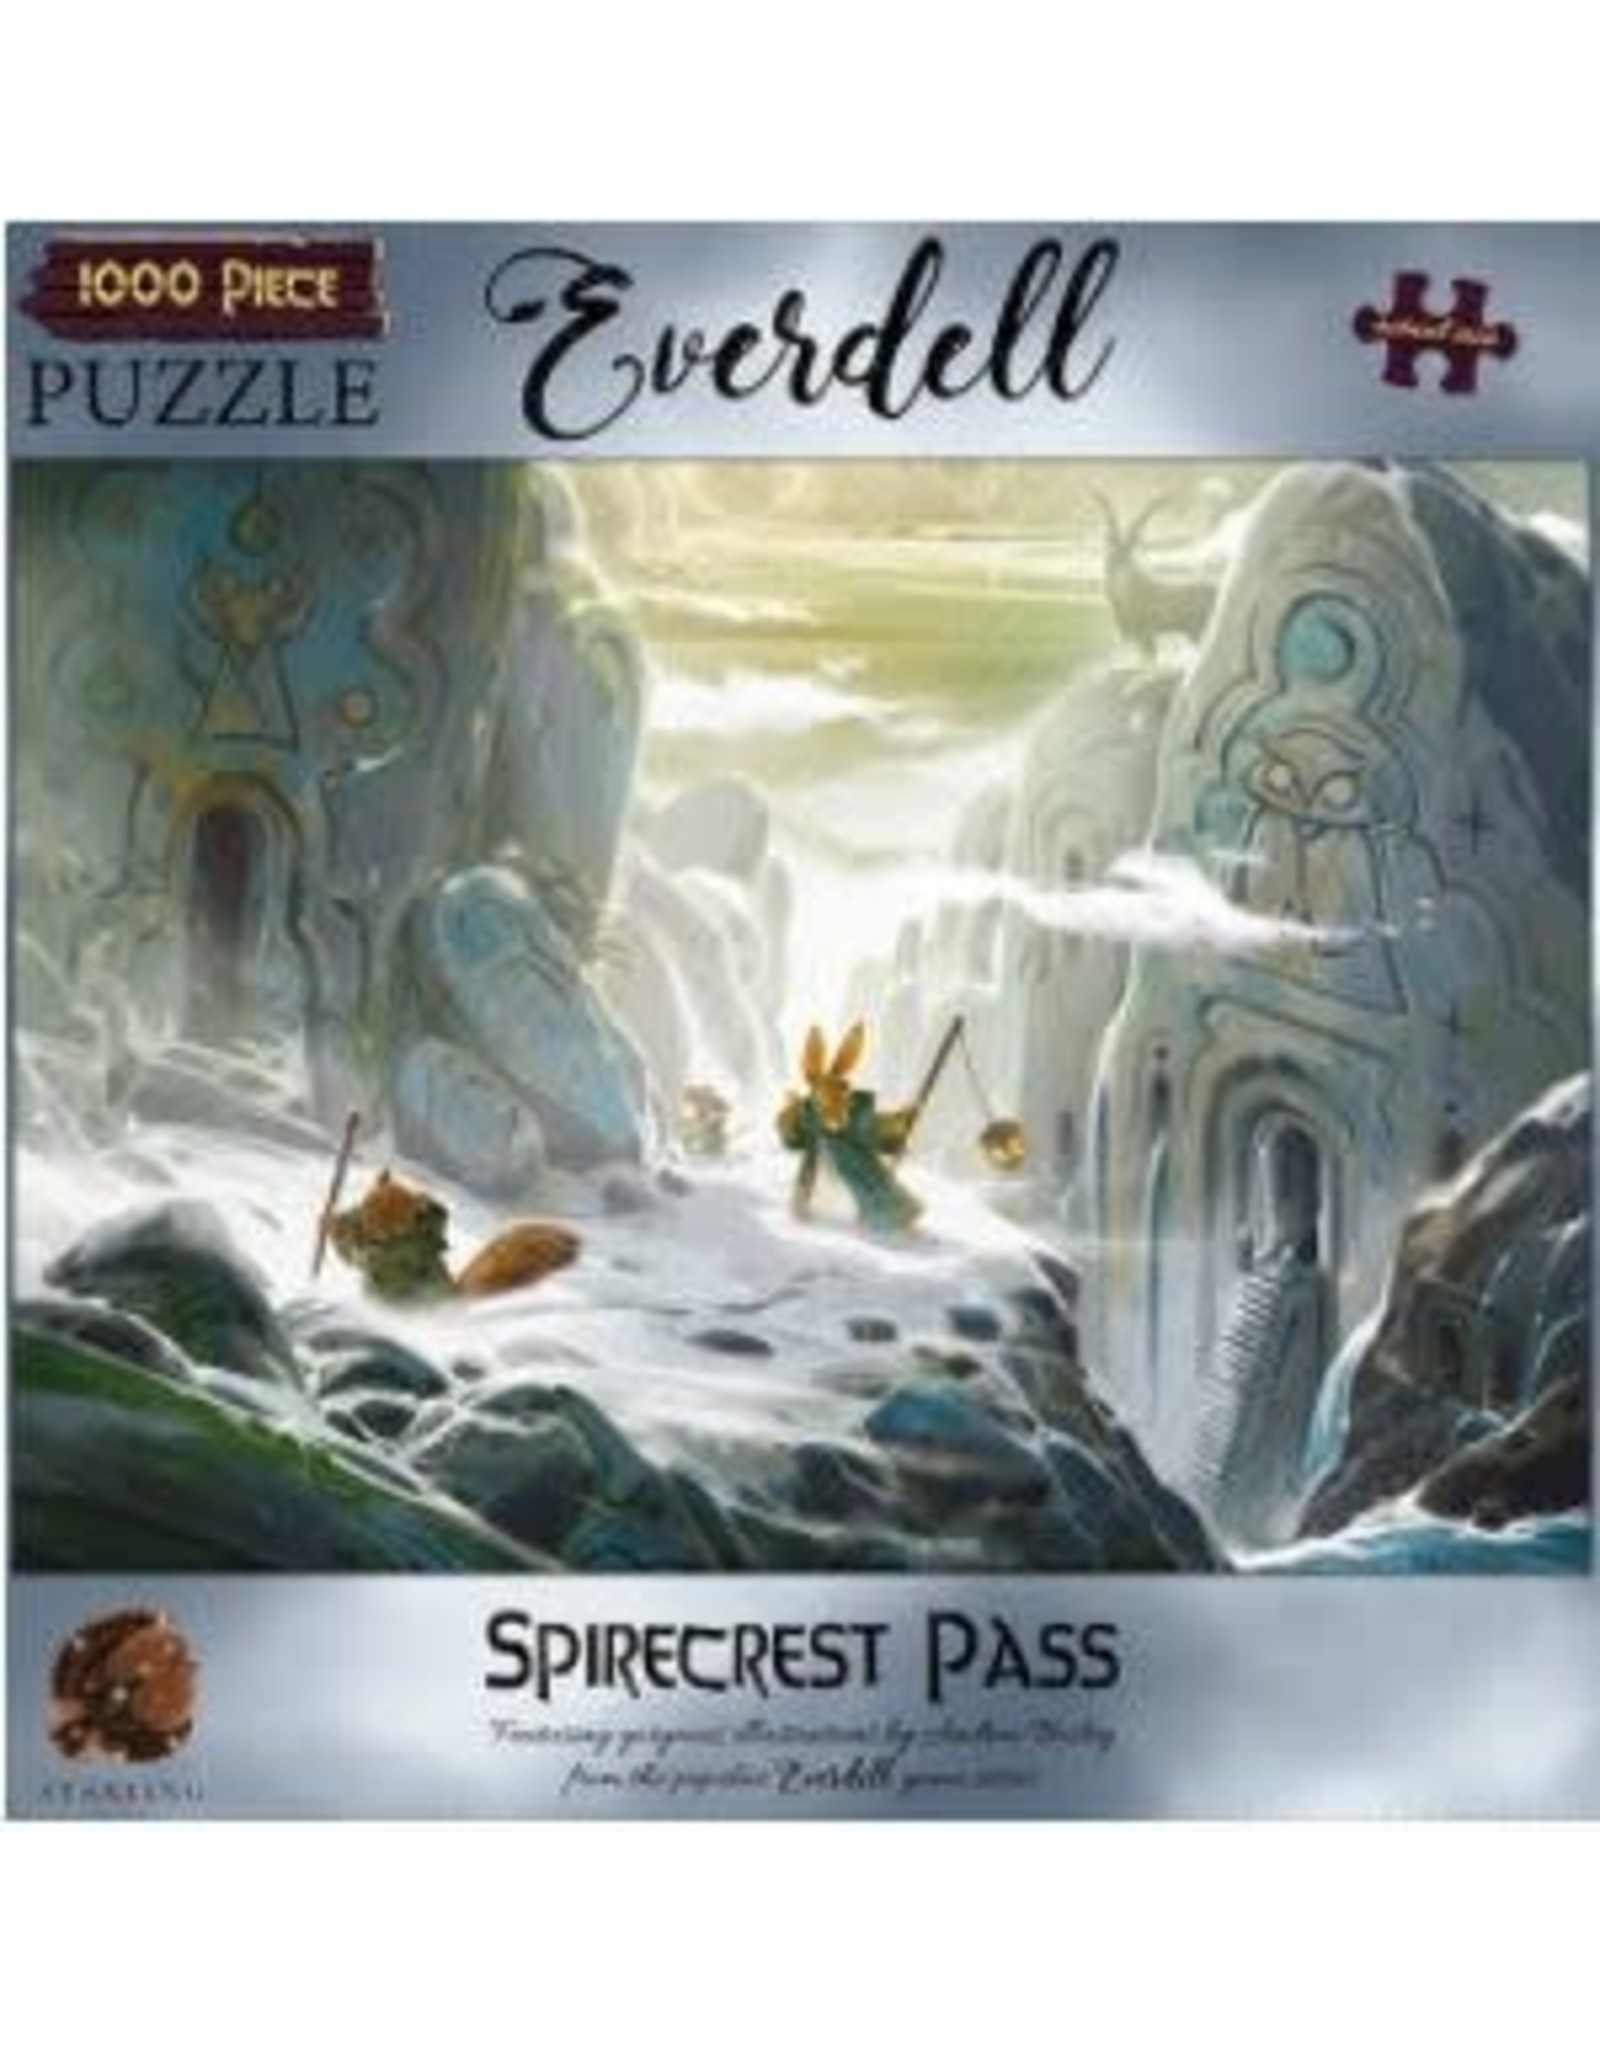 1000PC EVERDELL PUZZLE - SPIRECREST PASS